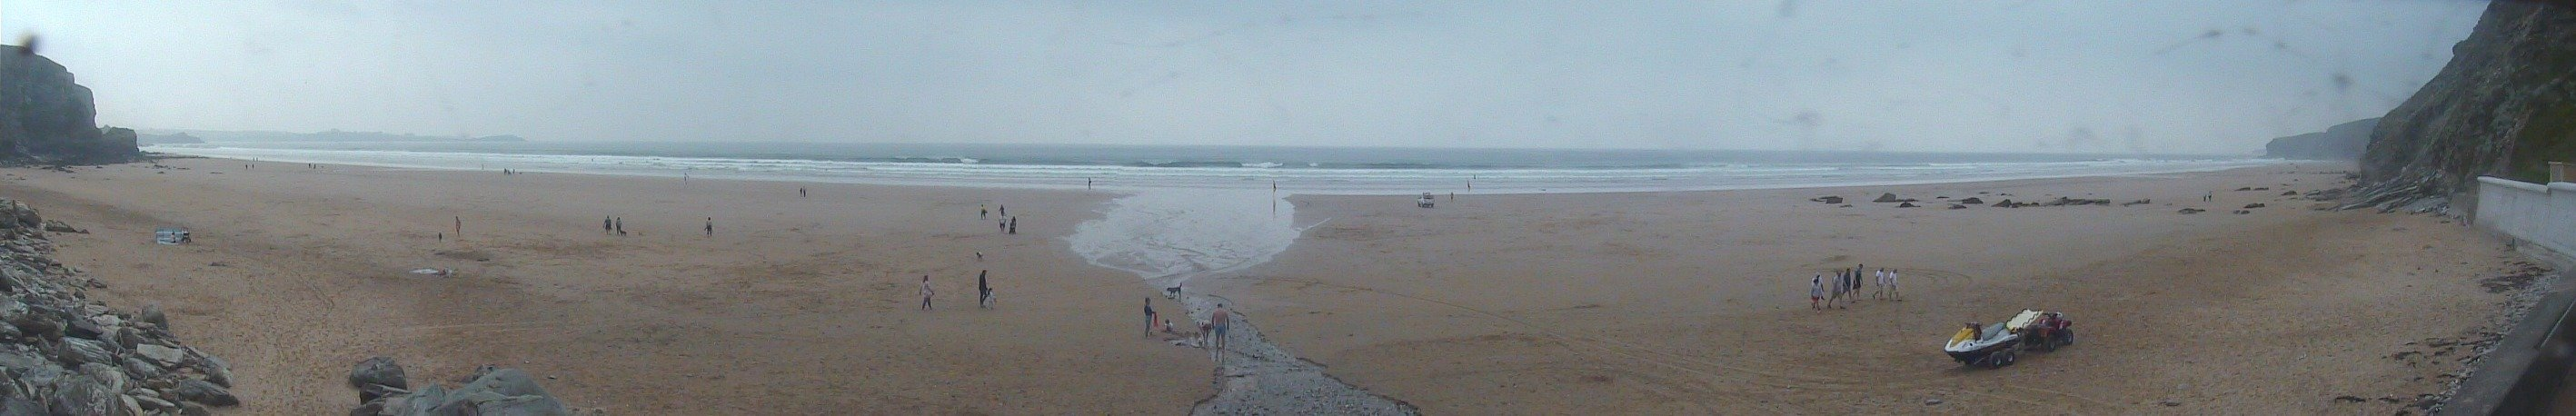 Latest webcam still for Watergate Bay